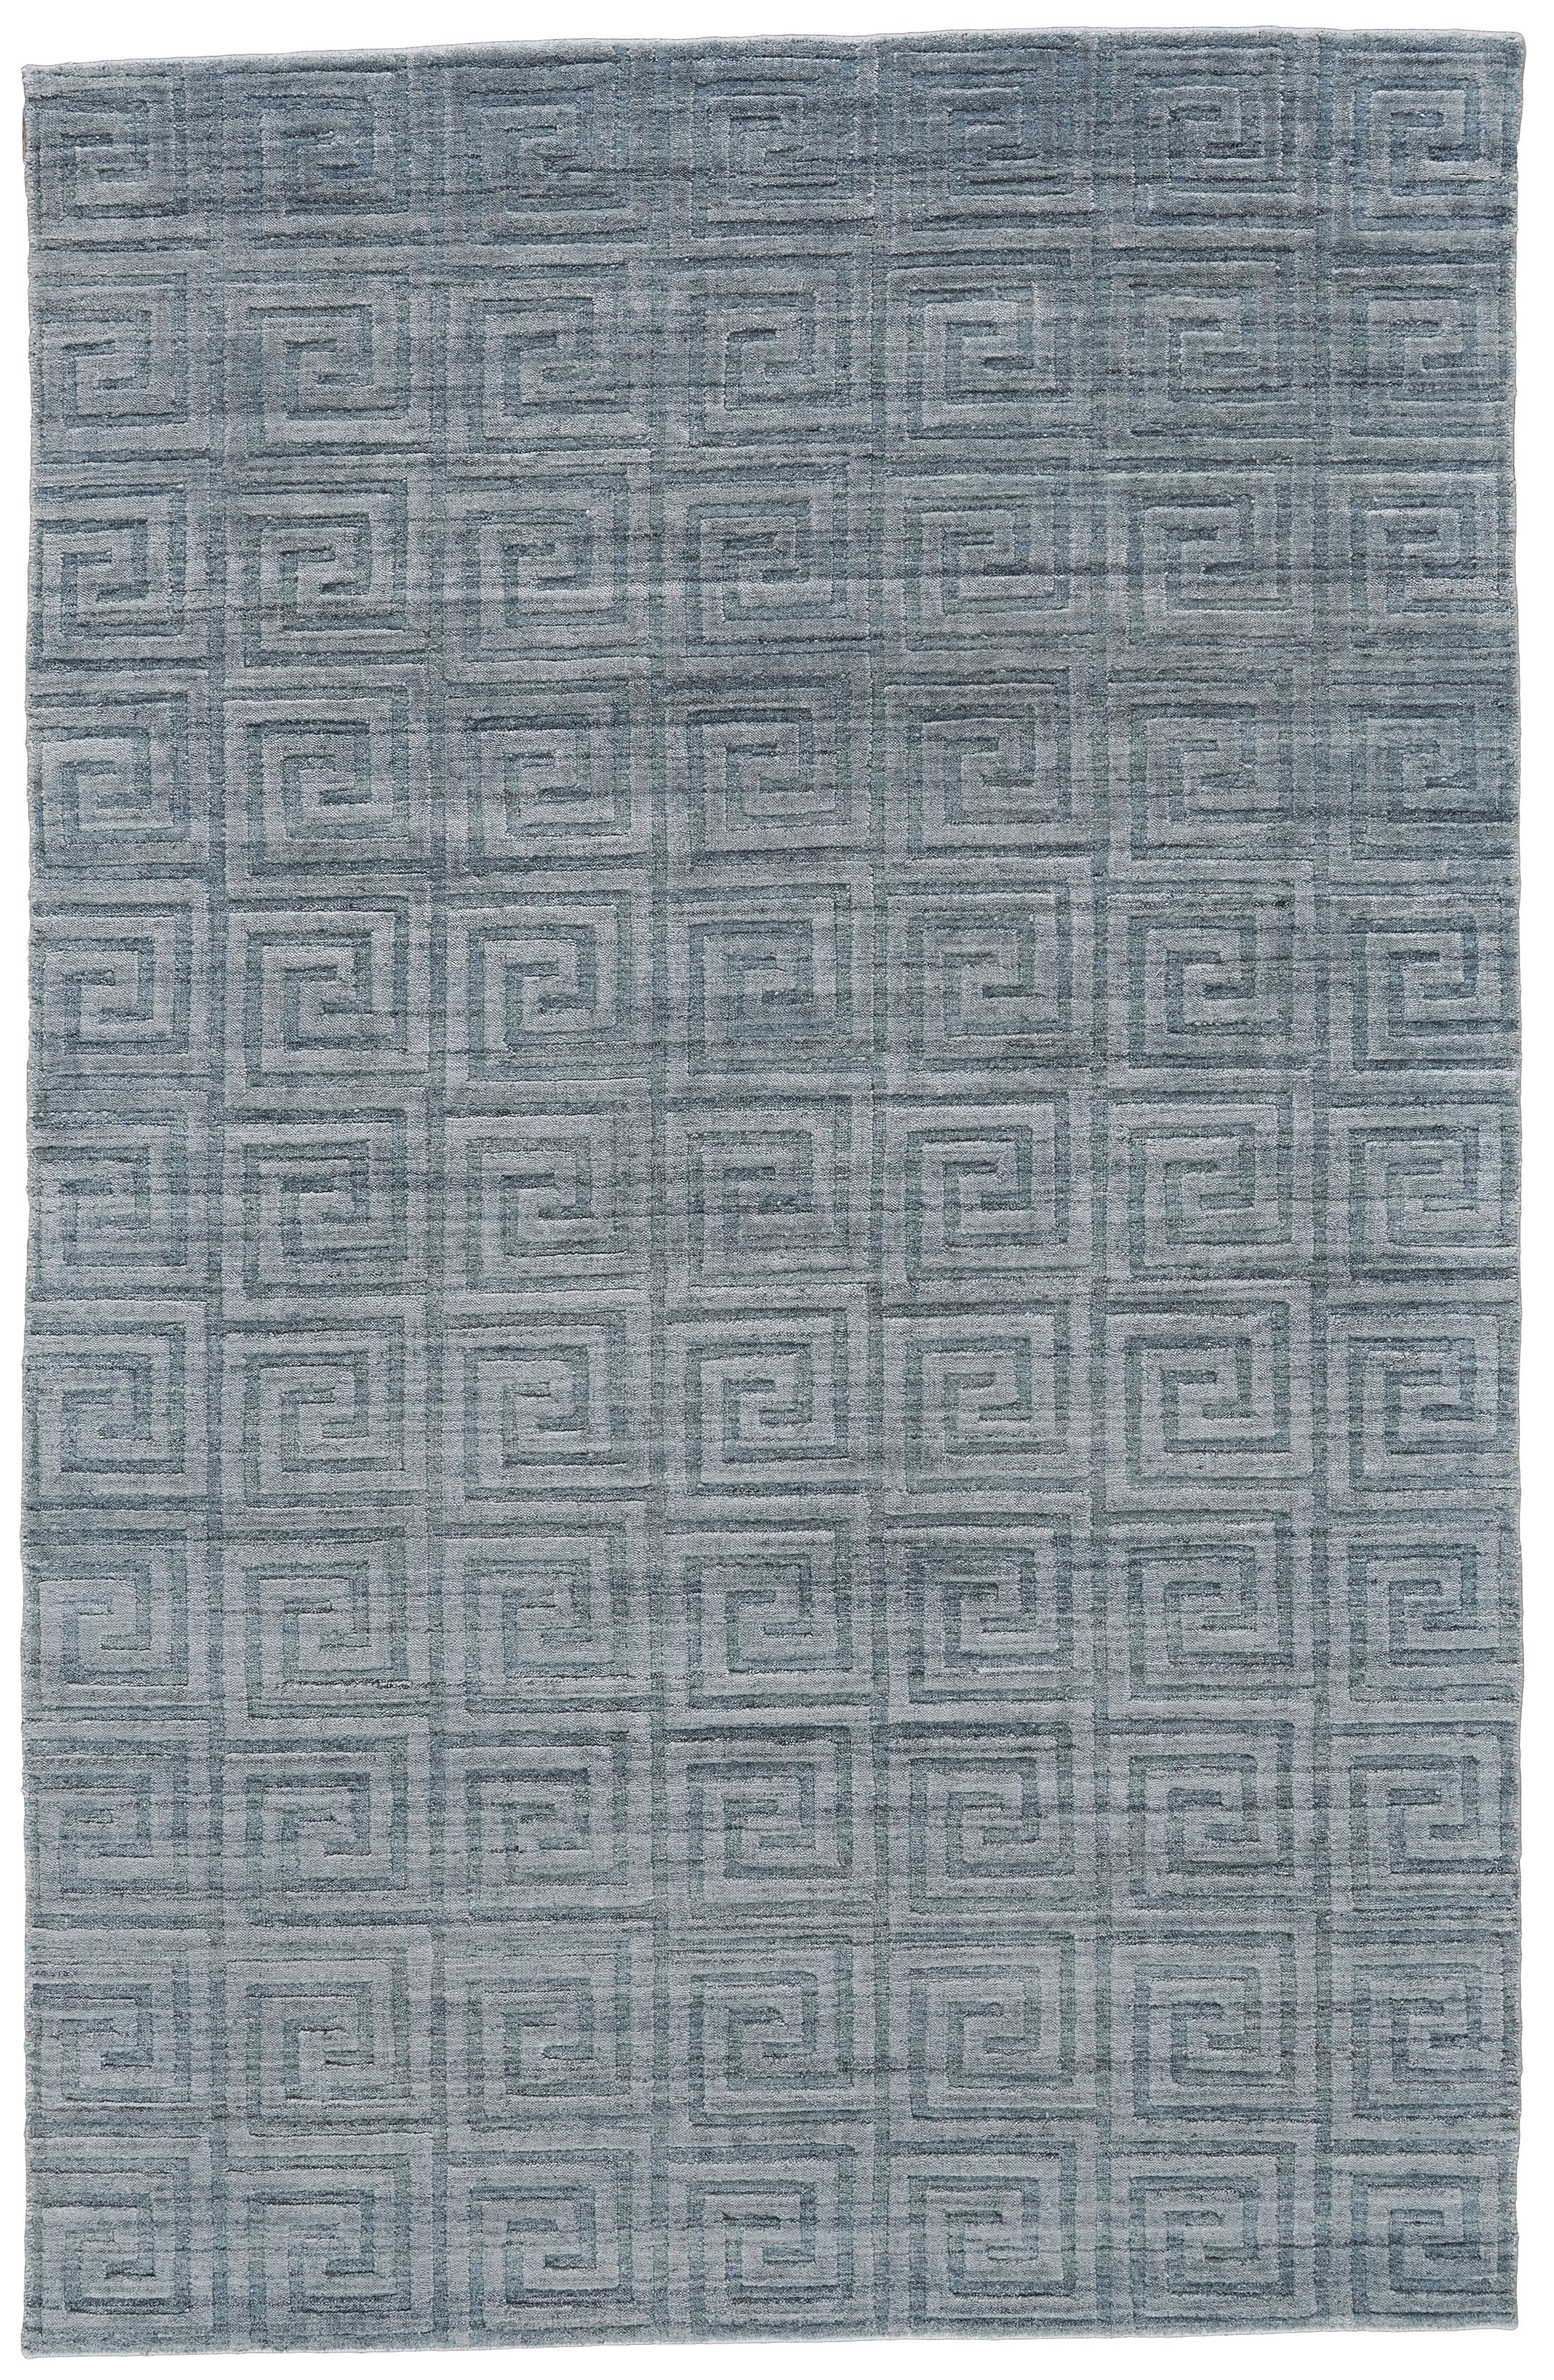 Halpern Hand-Loomed Turquoise Area Rug Rug Size: Rectangle 5' x 8'